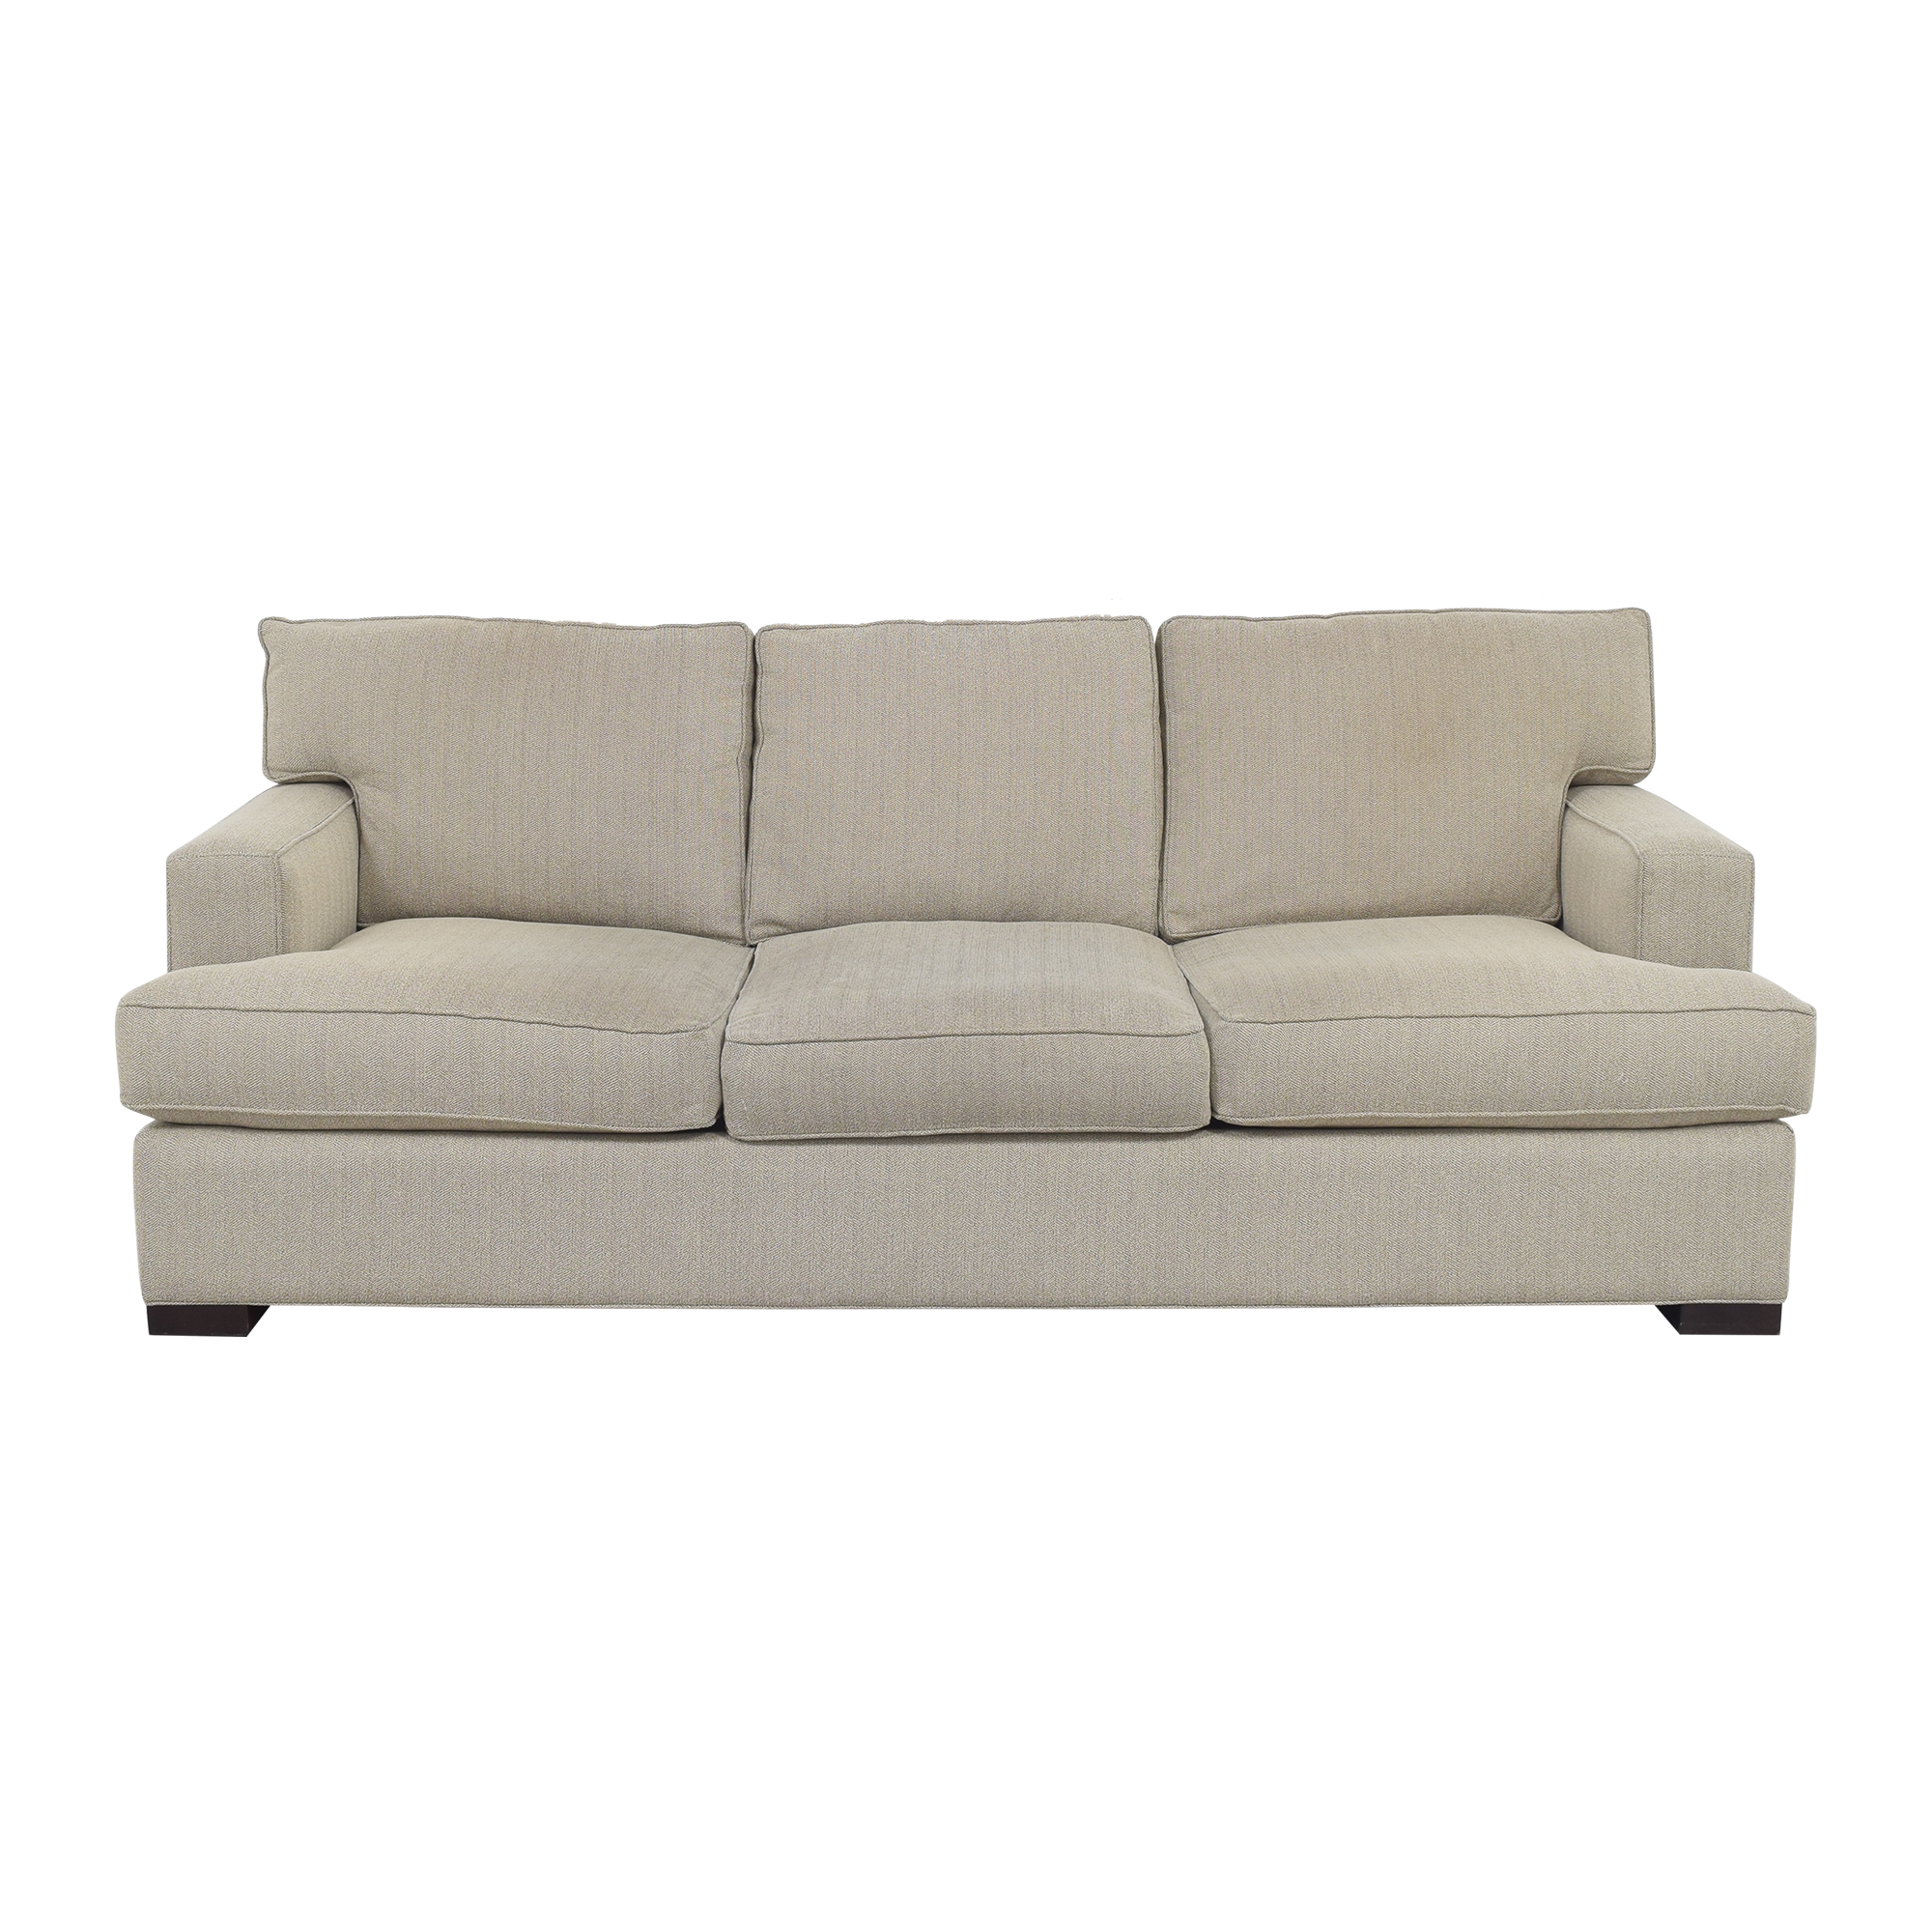 Arhaus Arhaus Dune Three Cushion Sofa Classic Sofas